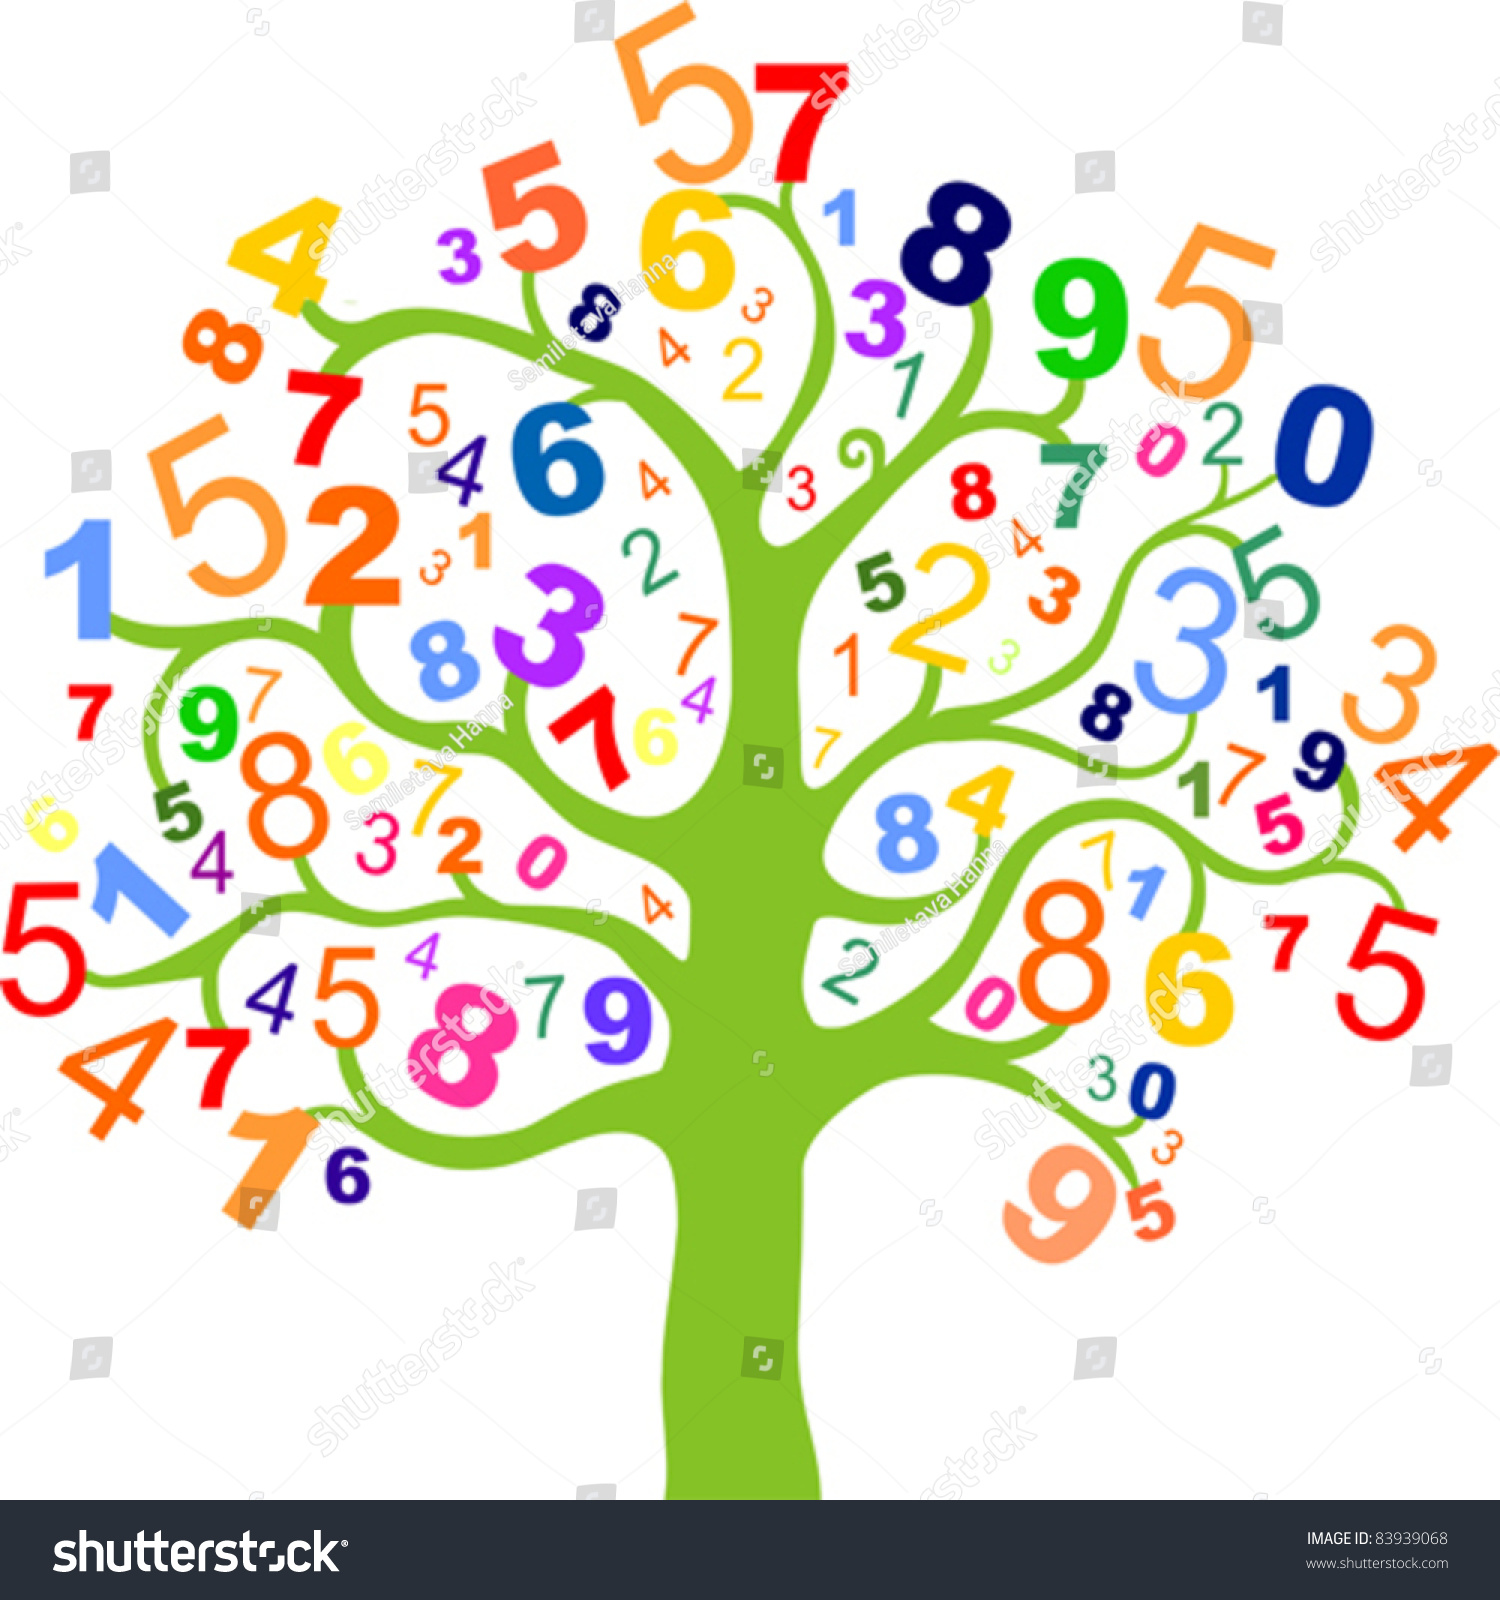 Abstract Colorful Tree With Numbers Isolated On White